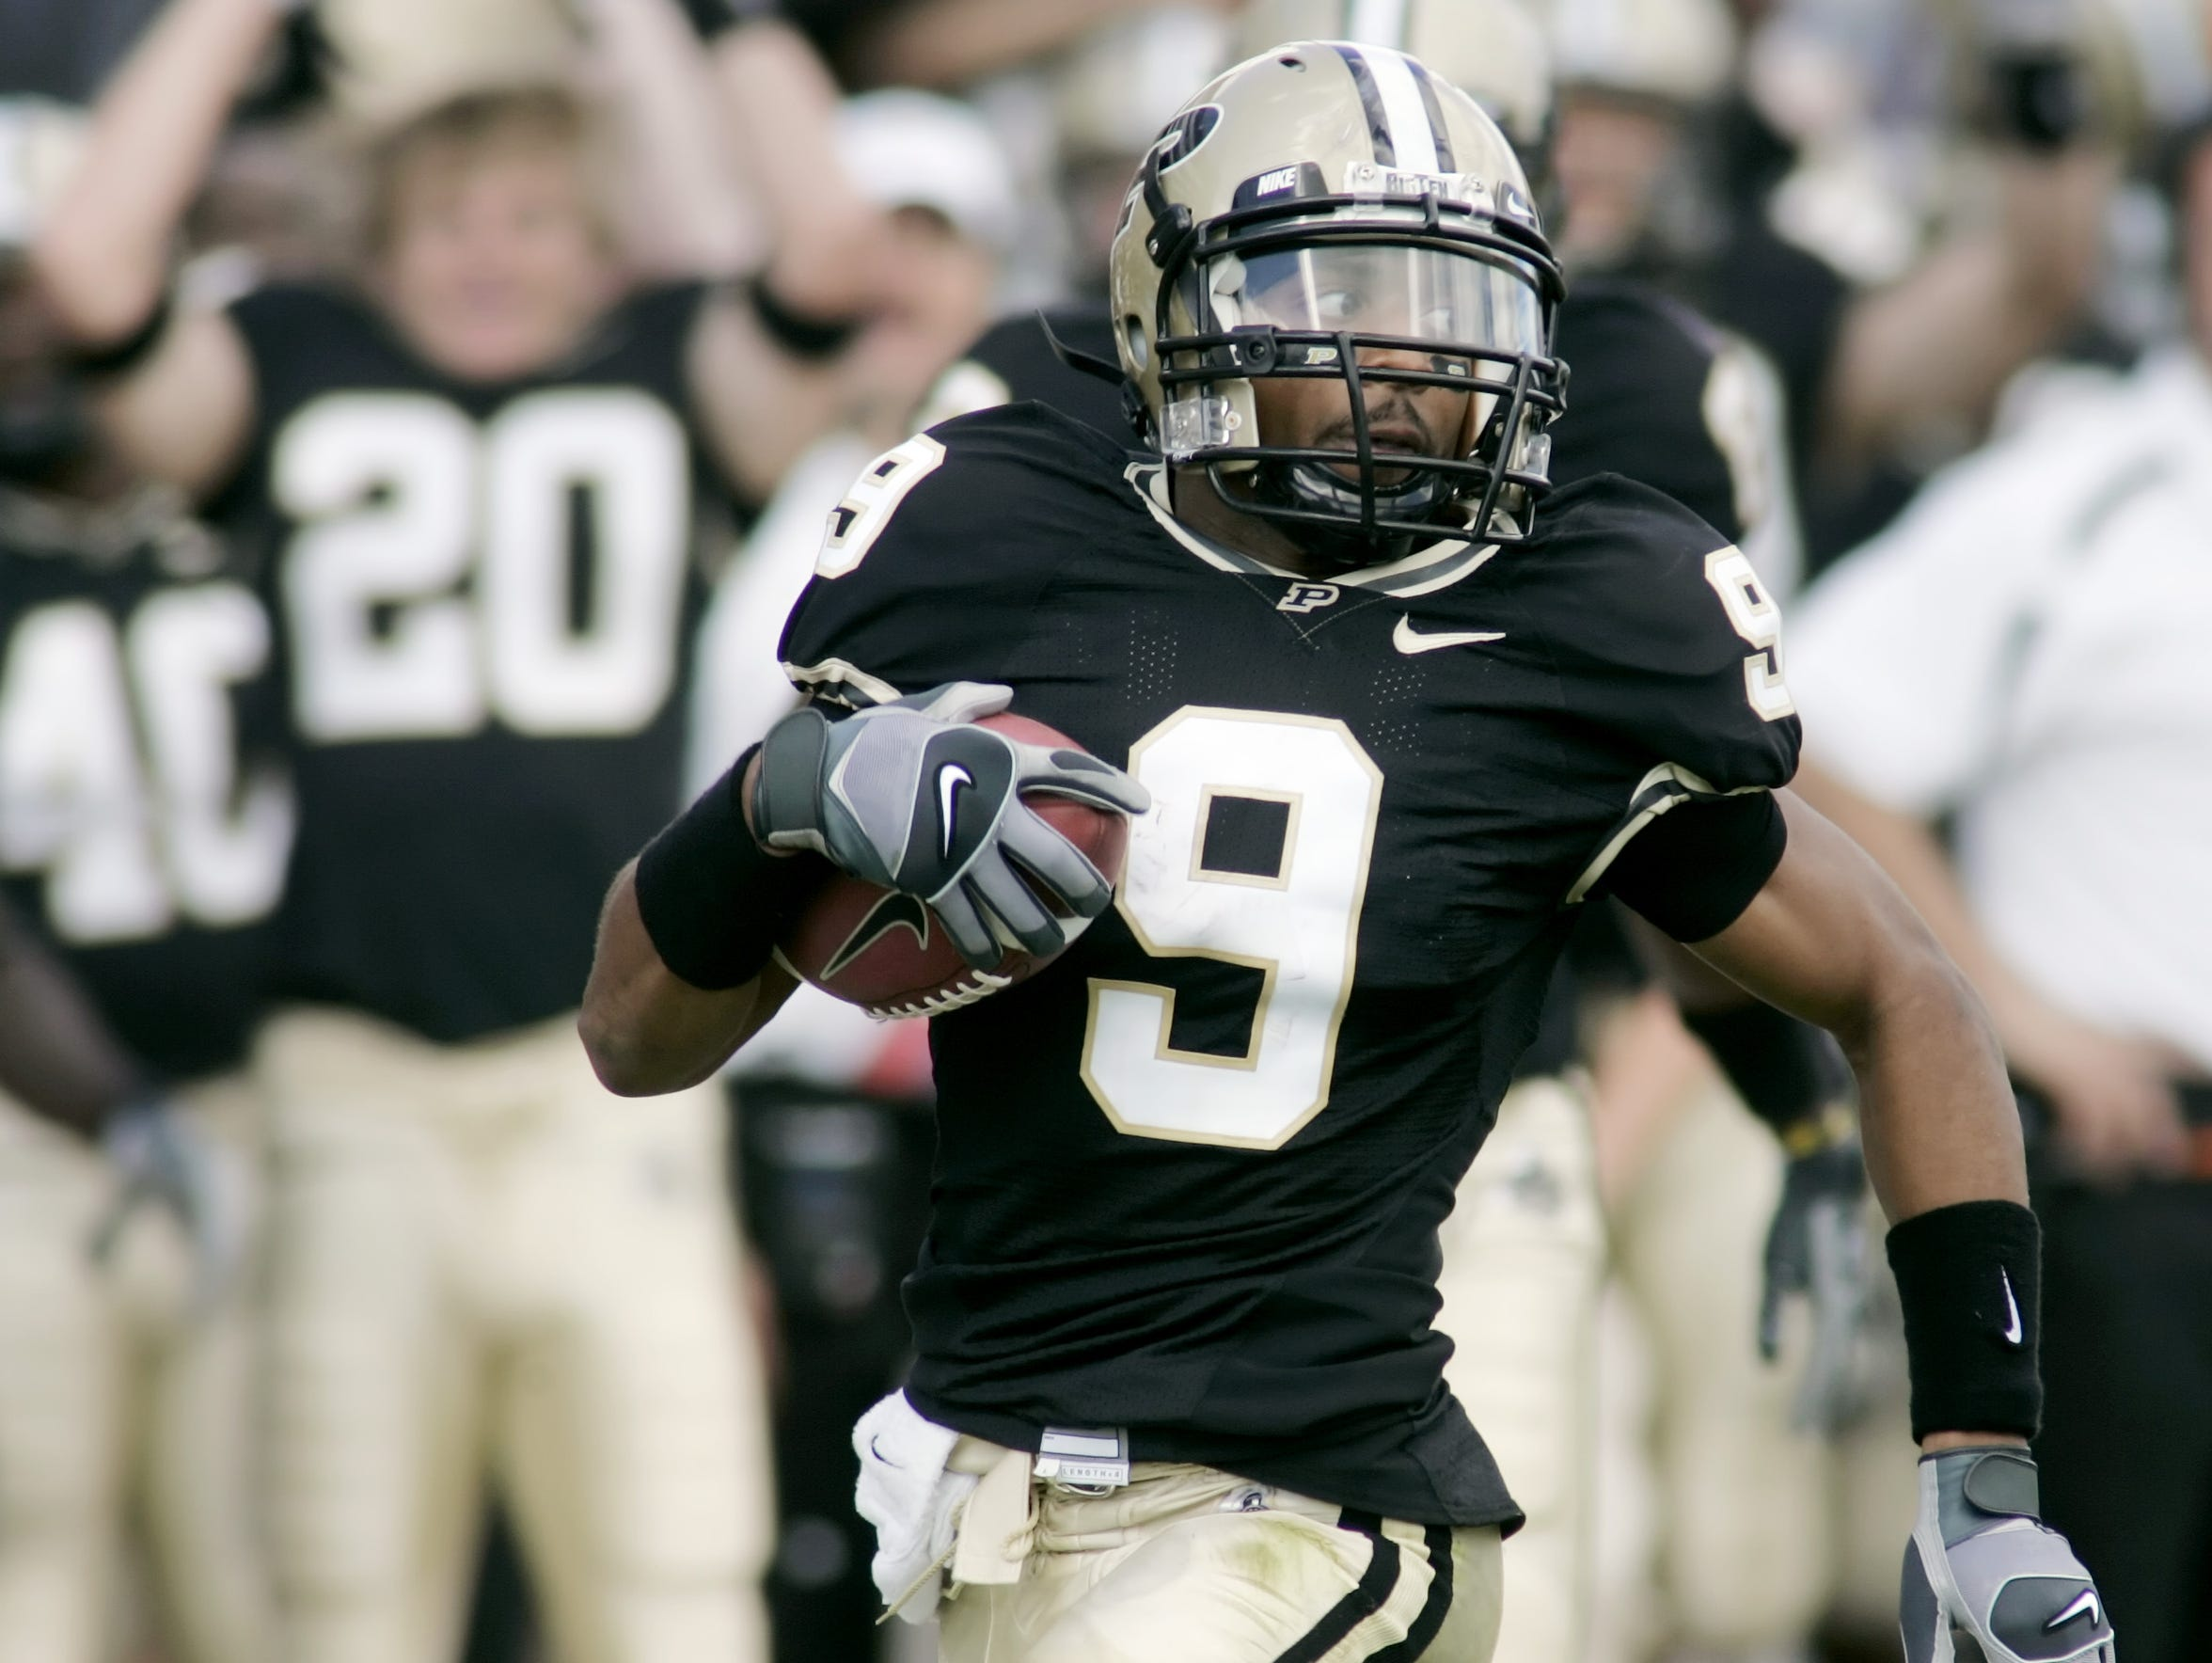 Purdue's Dorien Bryant put his speed to good use as